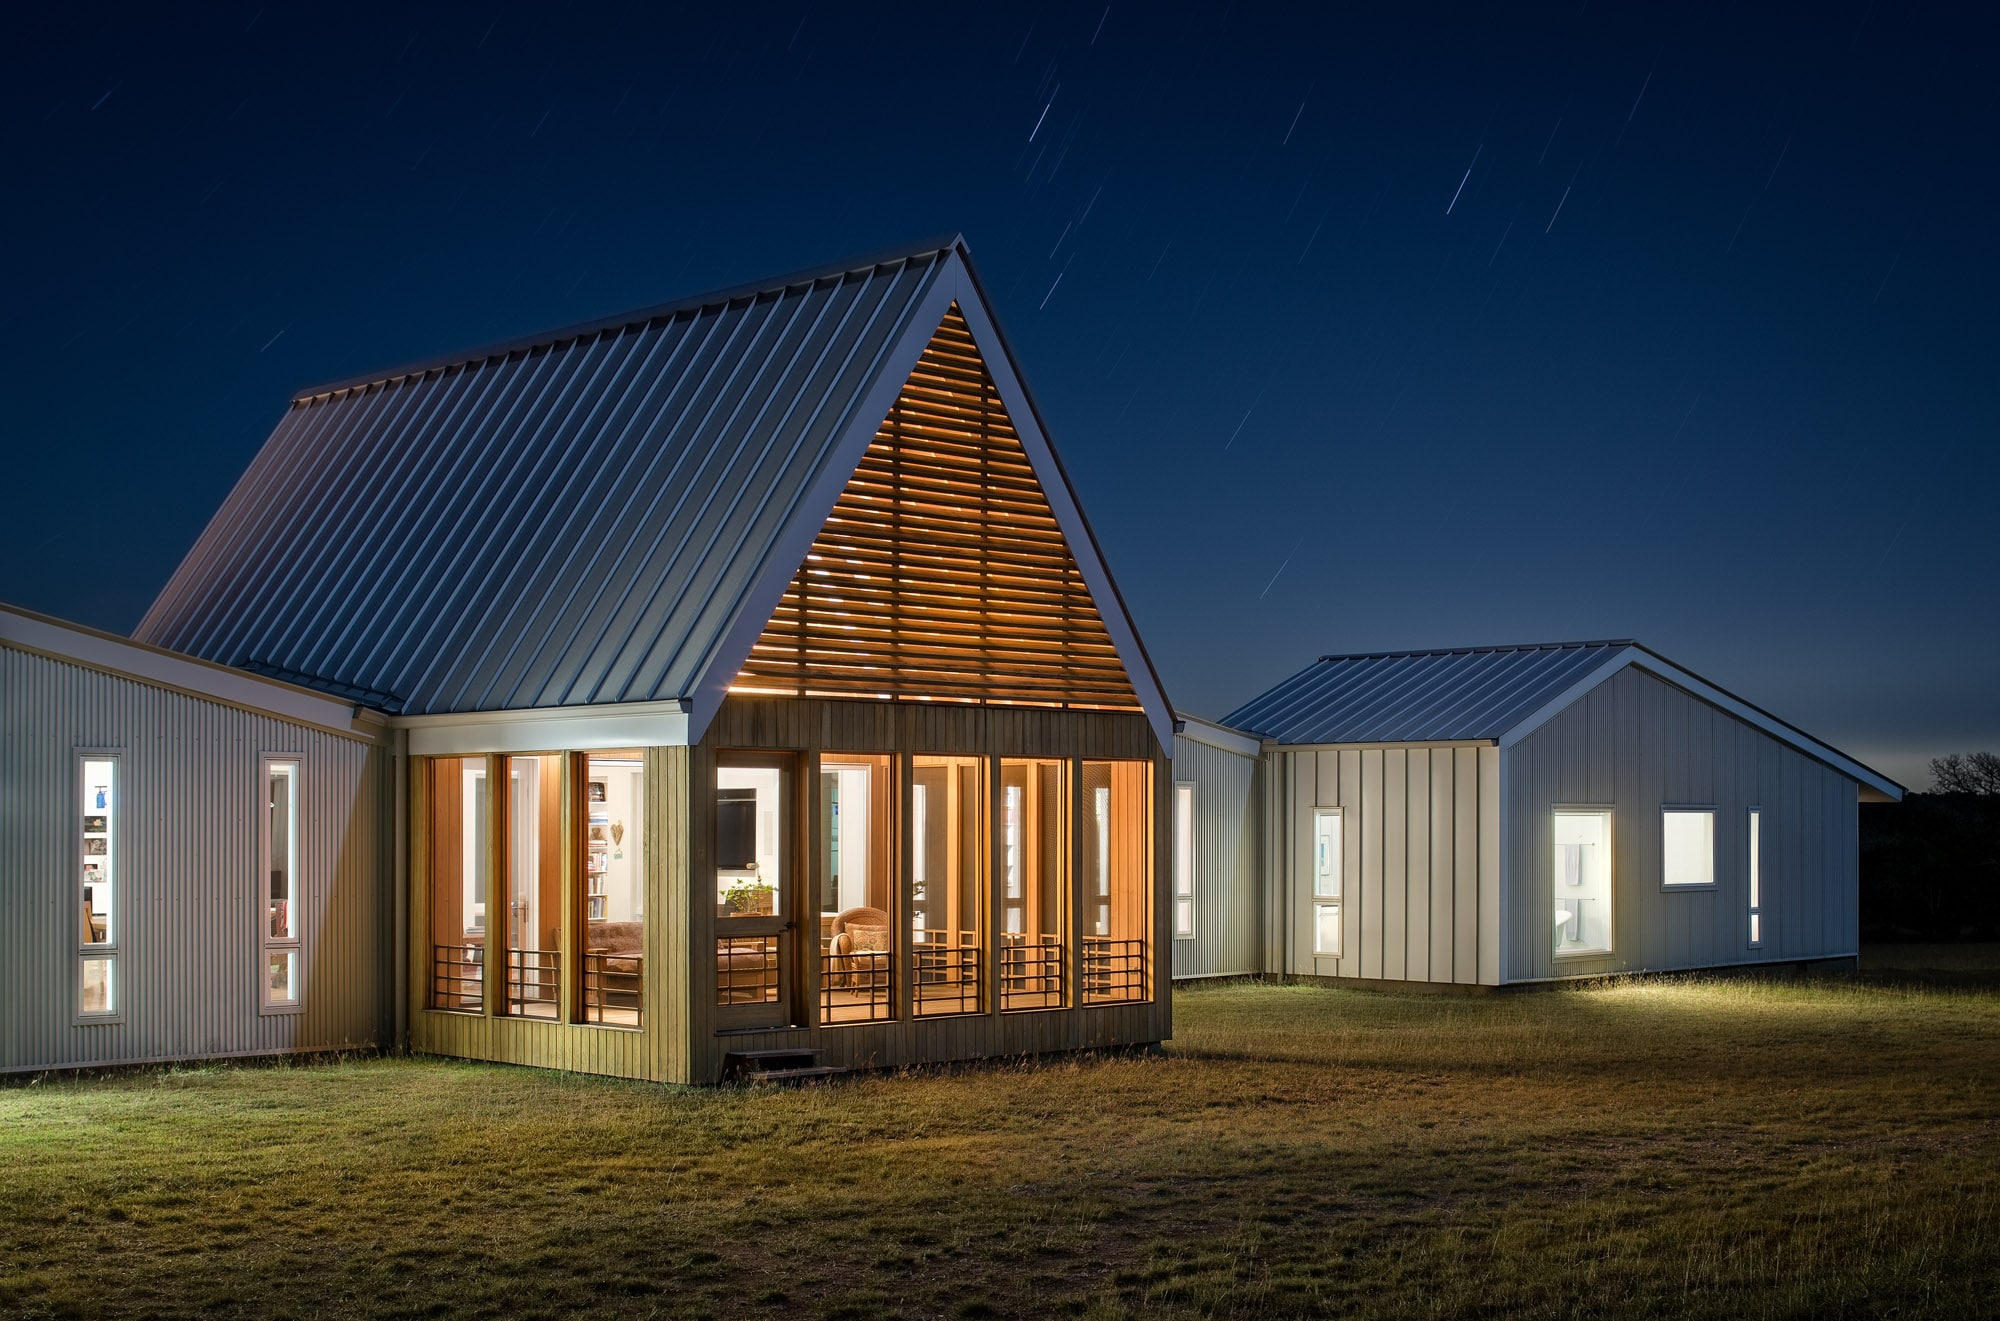 Self-sustaining home in Wimberley Texas